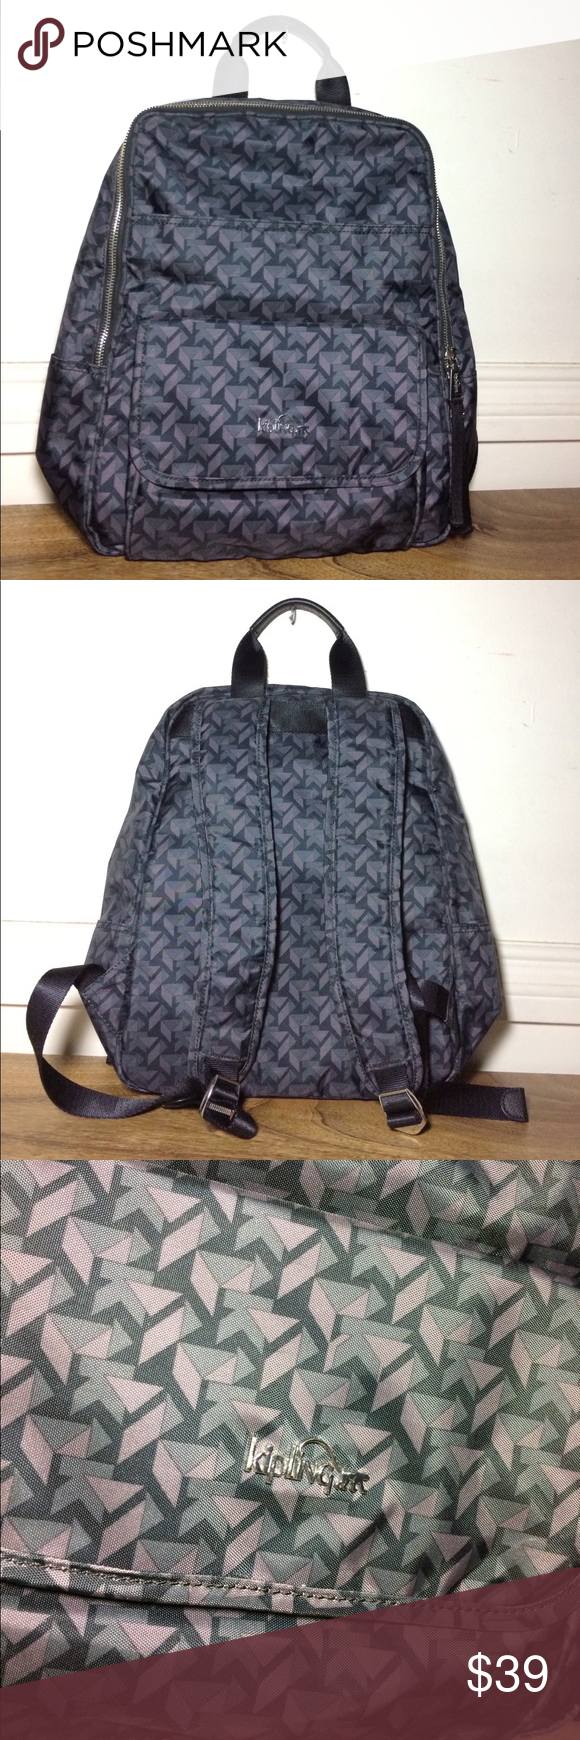 "Kipling Backpack 🎒 Authentic Kipling Backpack, gently worn no stains or holes clean in and out 👌🏽 with 4 out pockets and 4 inside very spacious, length: 16"" width: 14"" Kipling Bags Backpacks"